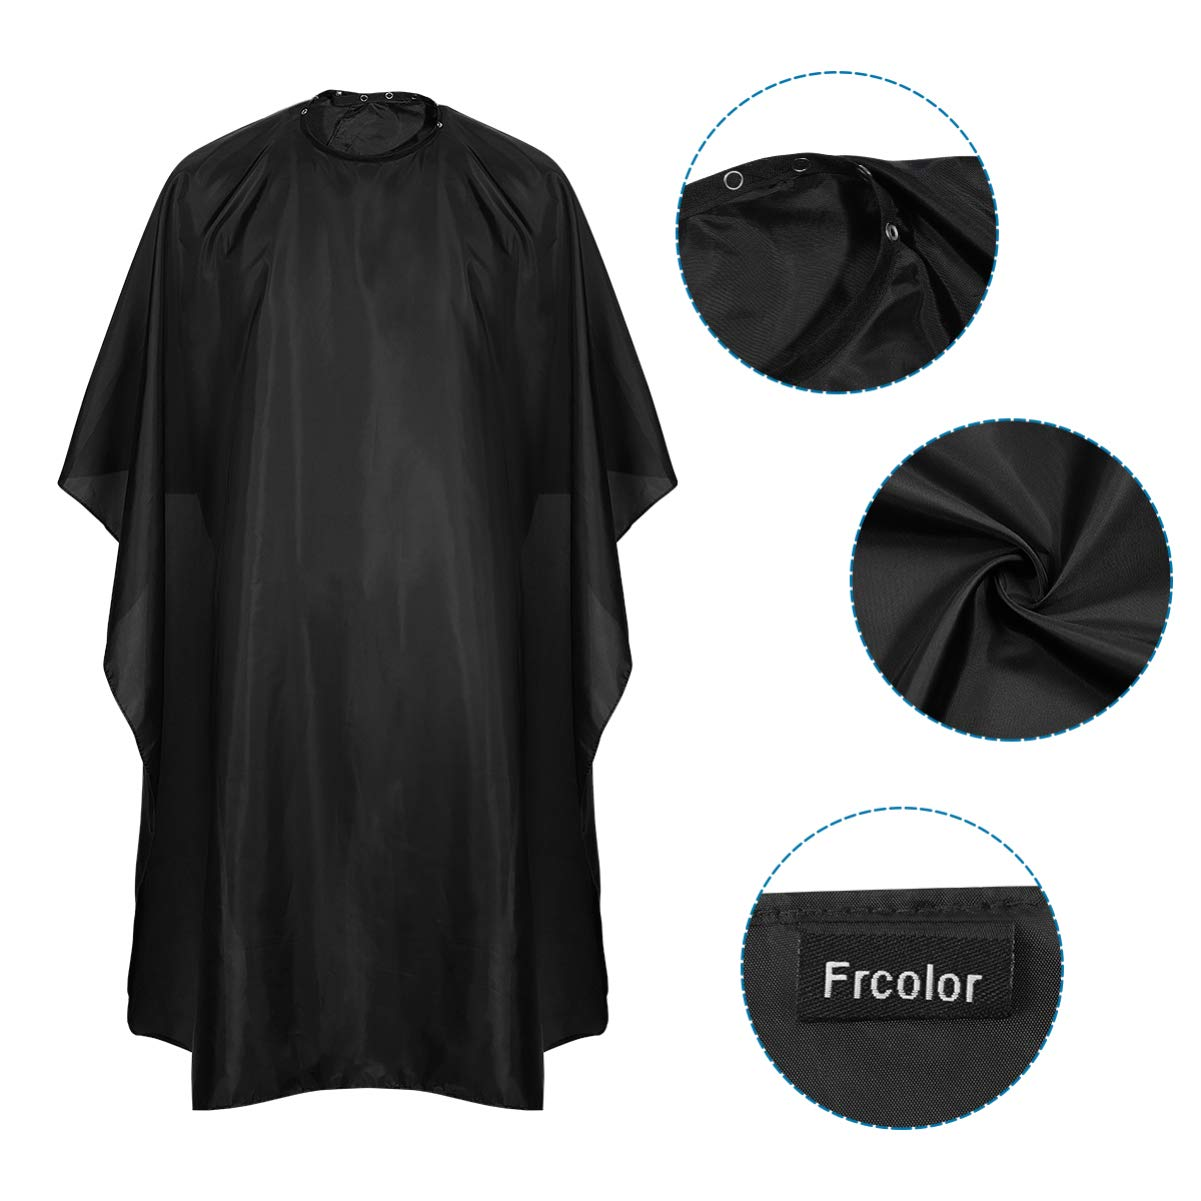 Salon Barber Cape with Snap Closure, 2 Pack Professional Hair Cutting Cape with Neck Duster Brush and Black Hair Comb